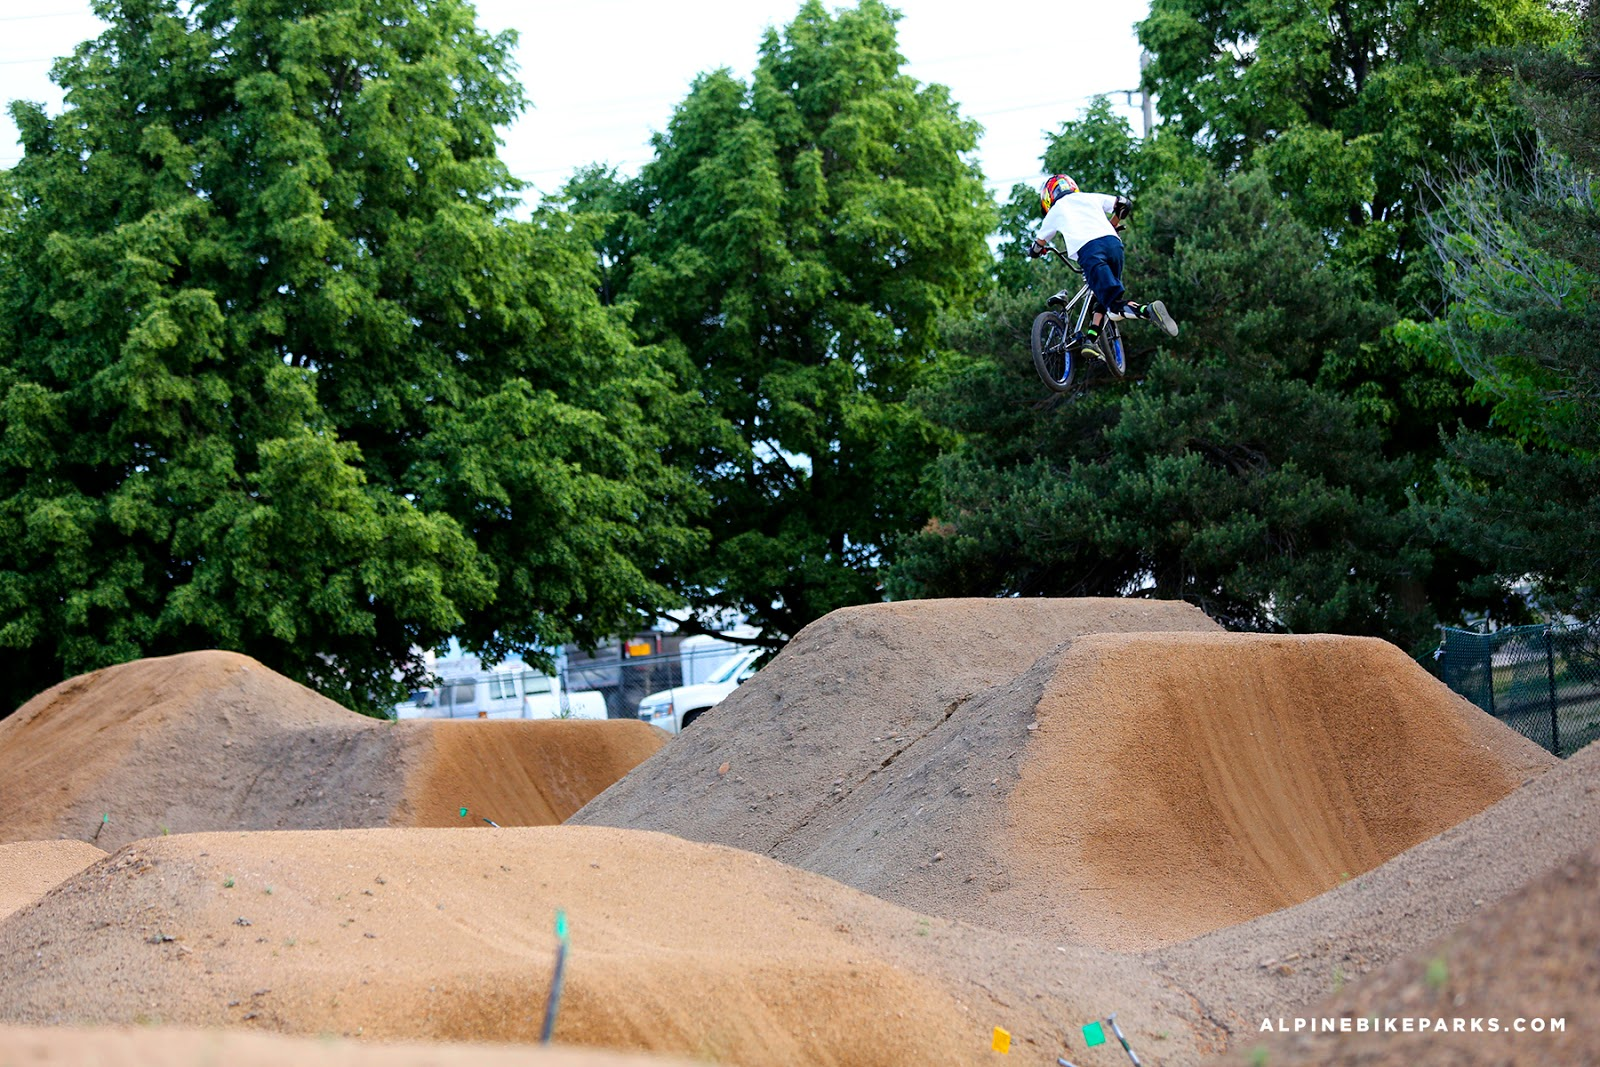 ALPINE BIKE PARKS: The Ruby Hill Bike Park Pre-Opening